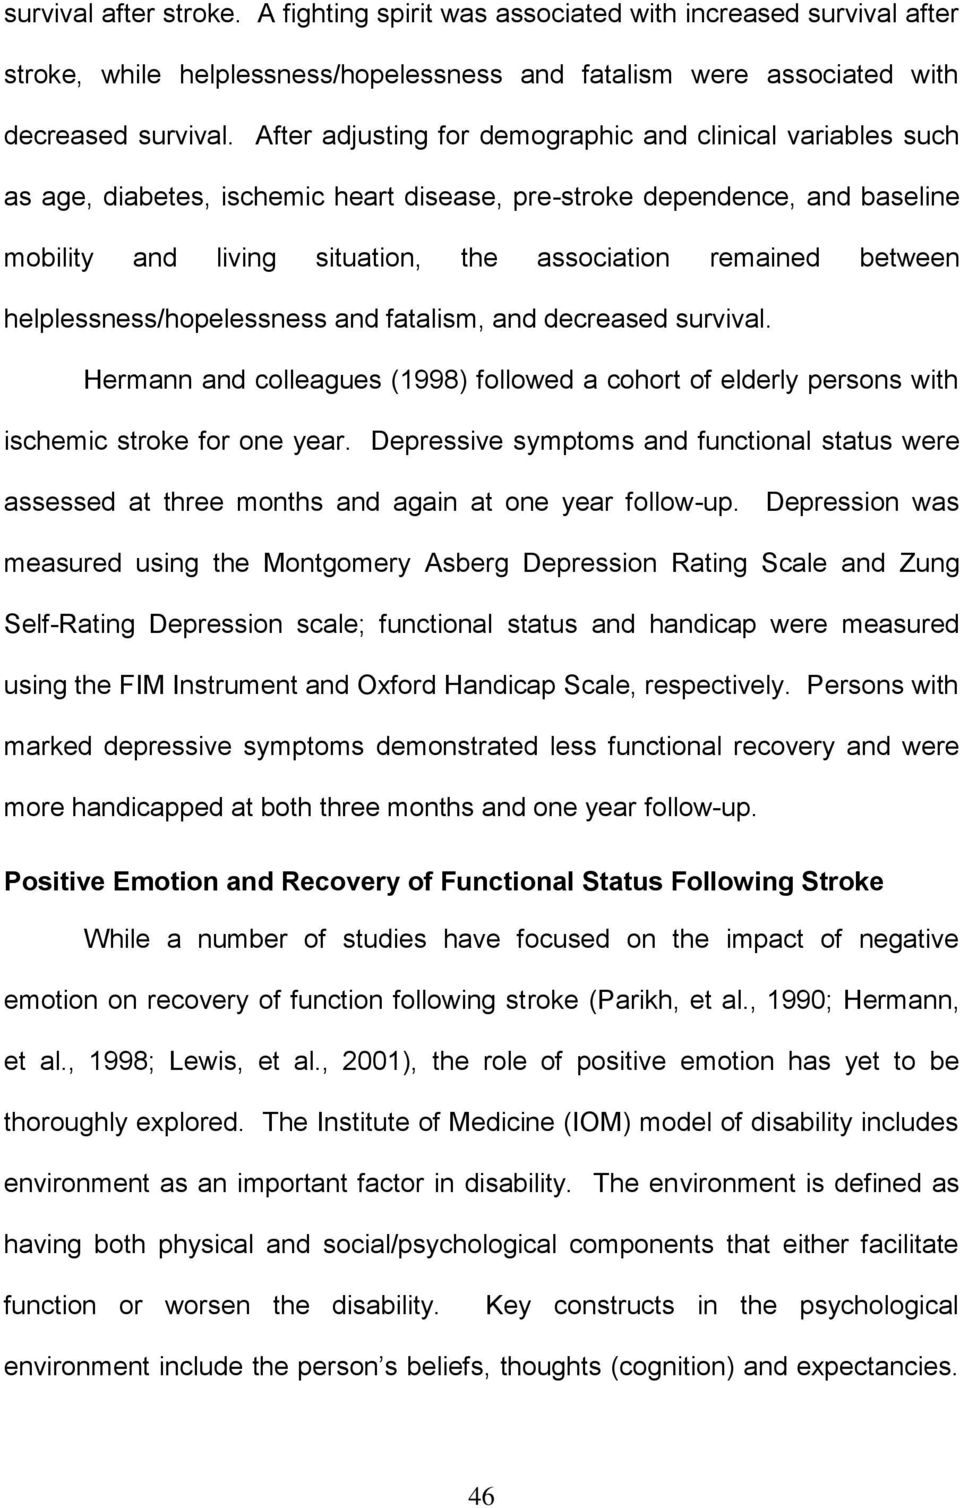 between helplessness/hopelessness and fatalism, and decreased survival. Hermann and colleagues (1998) followed a cohort of elderly persons with ischemic stroke for one year.